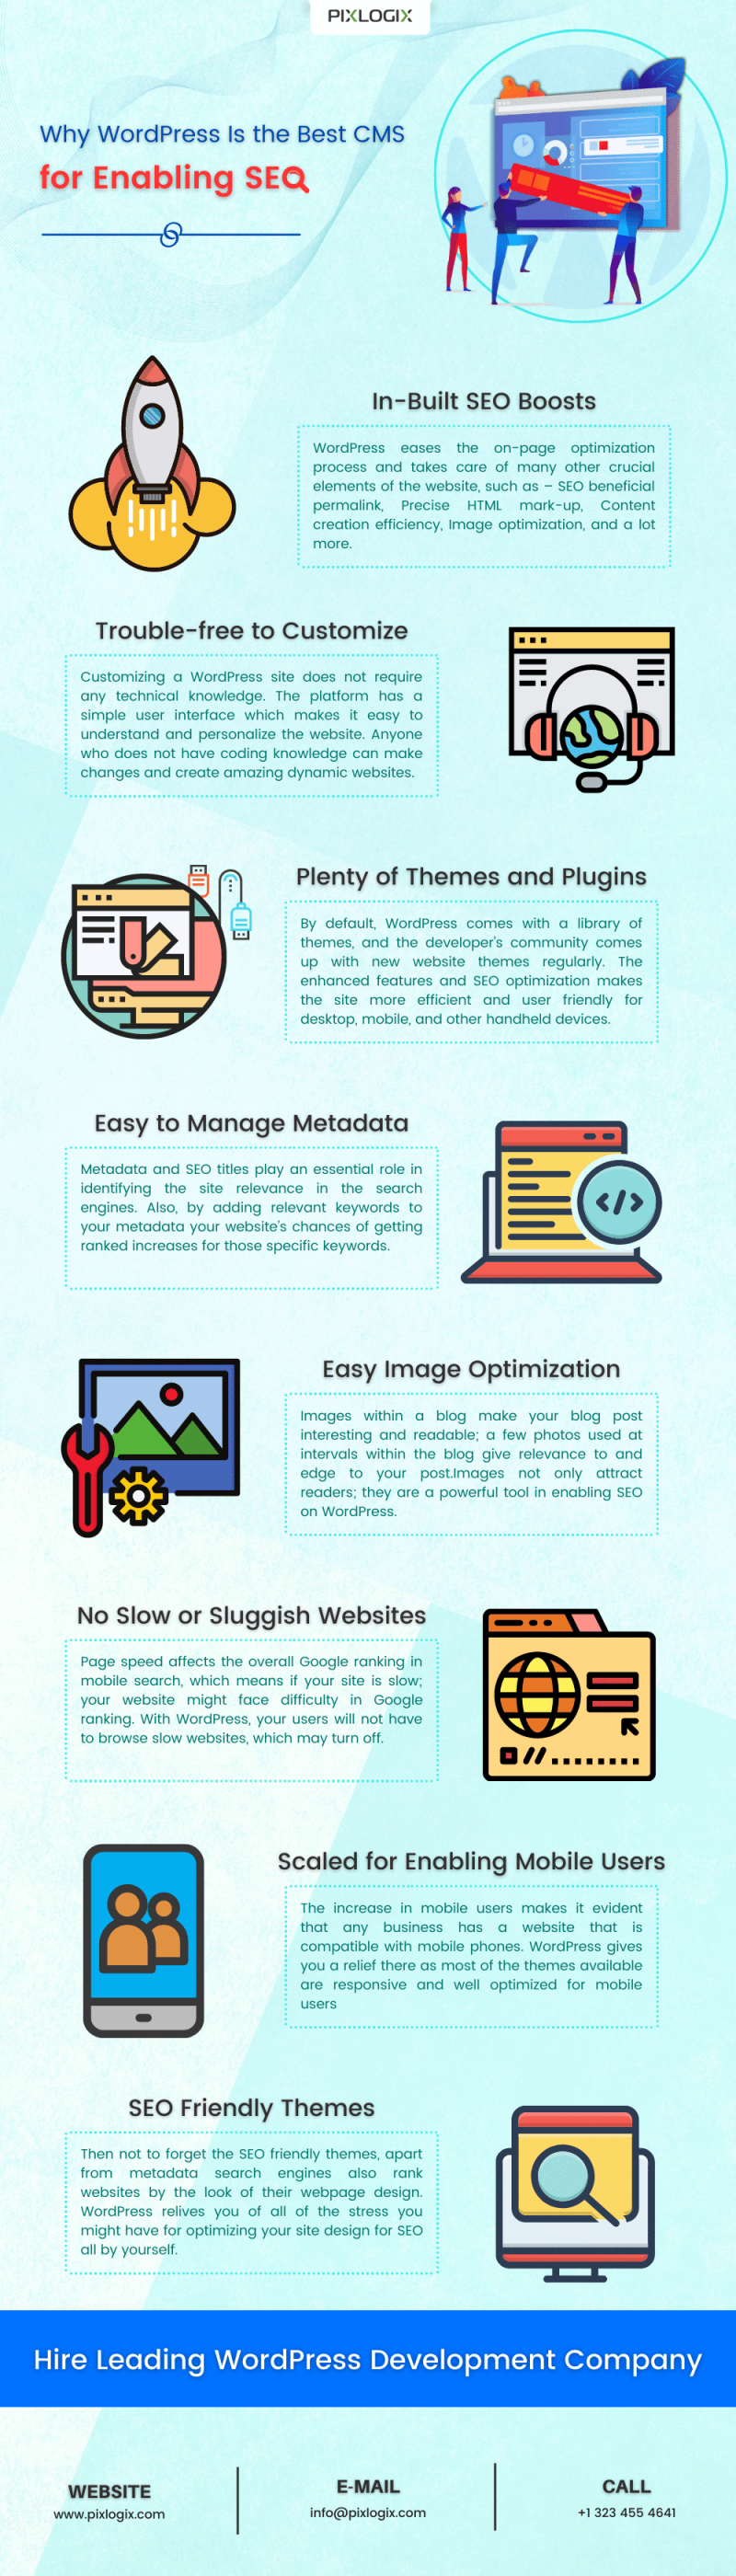 Why WordPress Is the Best CMS for Enabling SEO